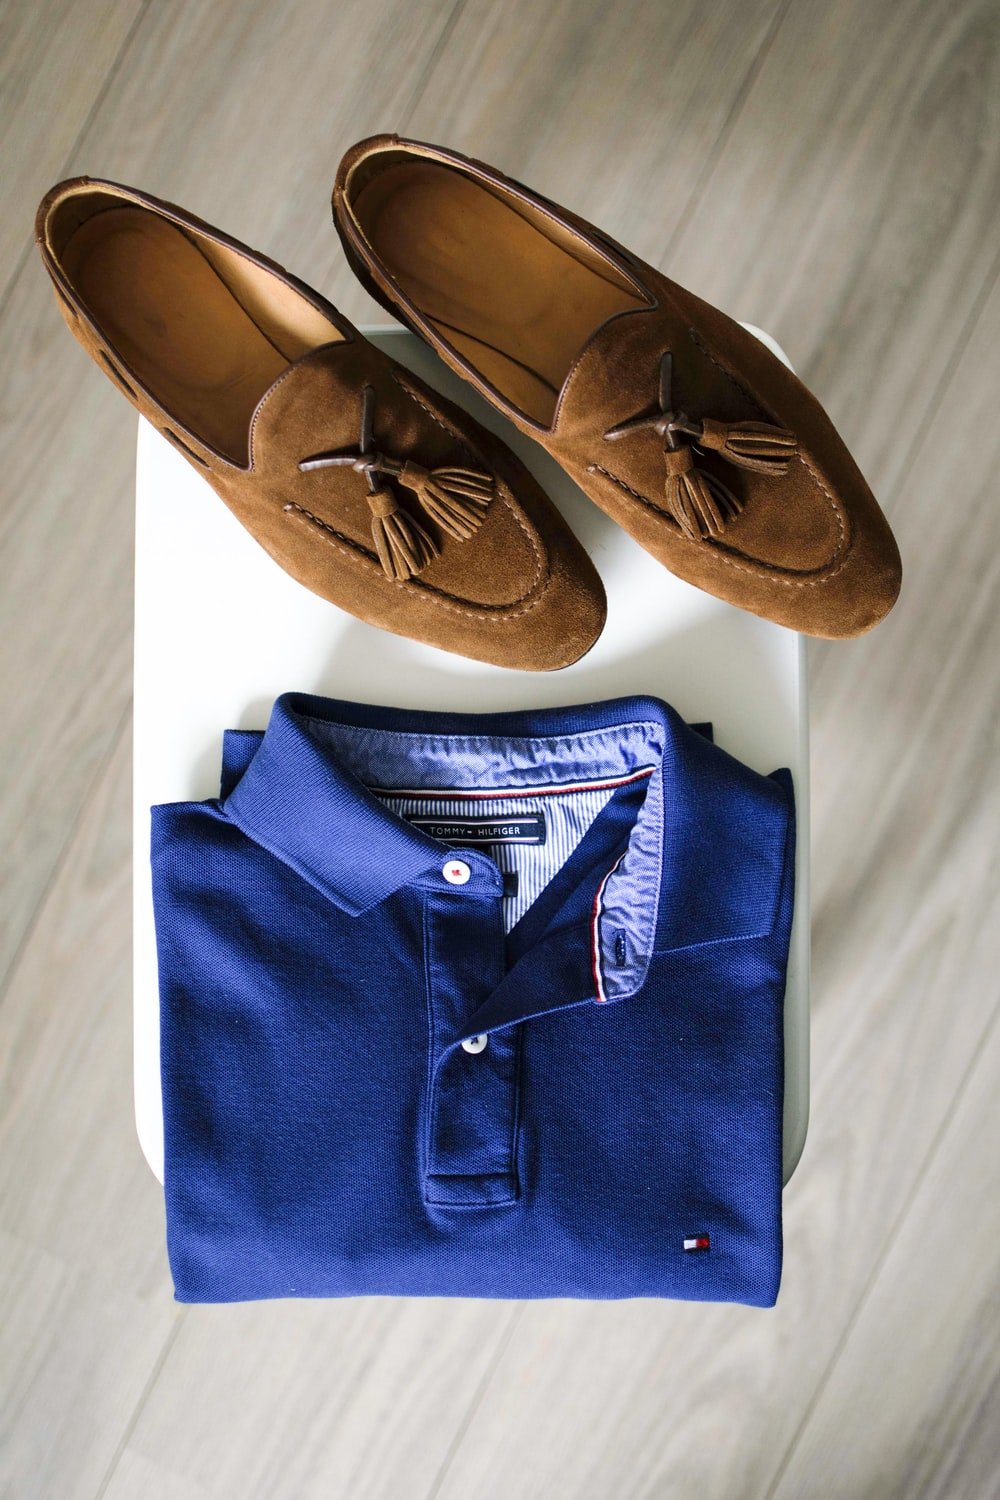 pair of brown loafers and blue polo shirt